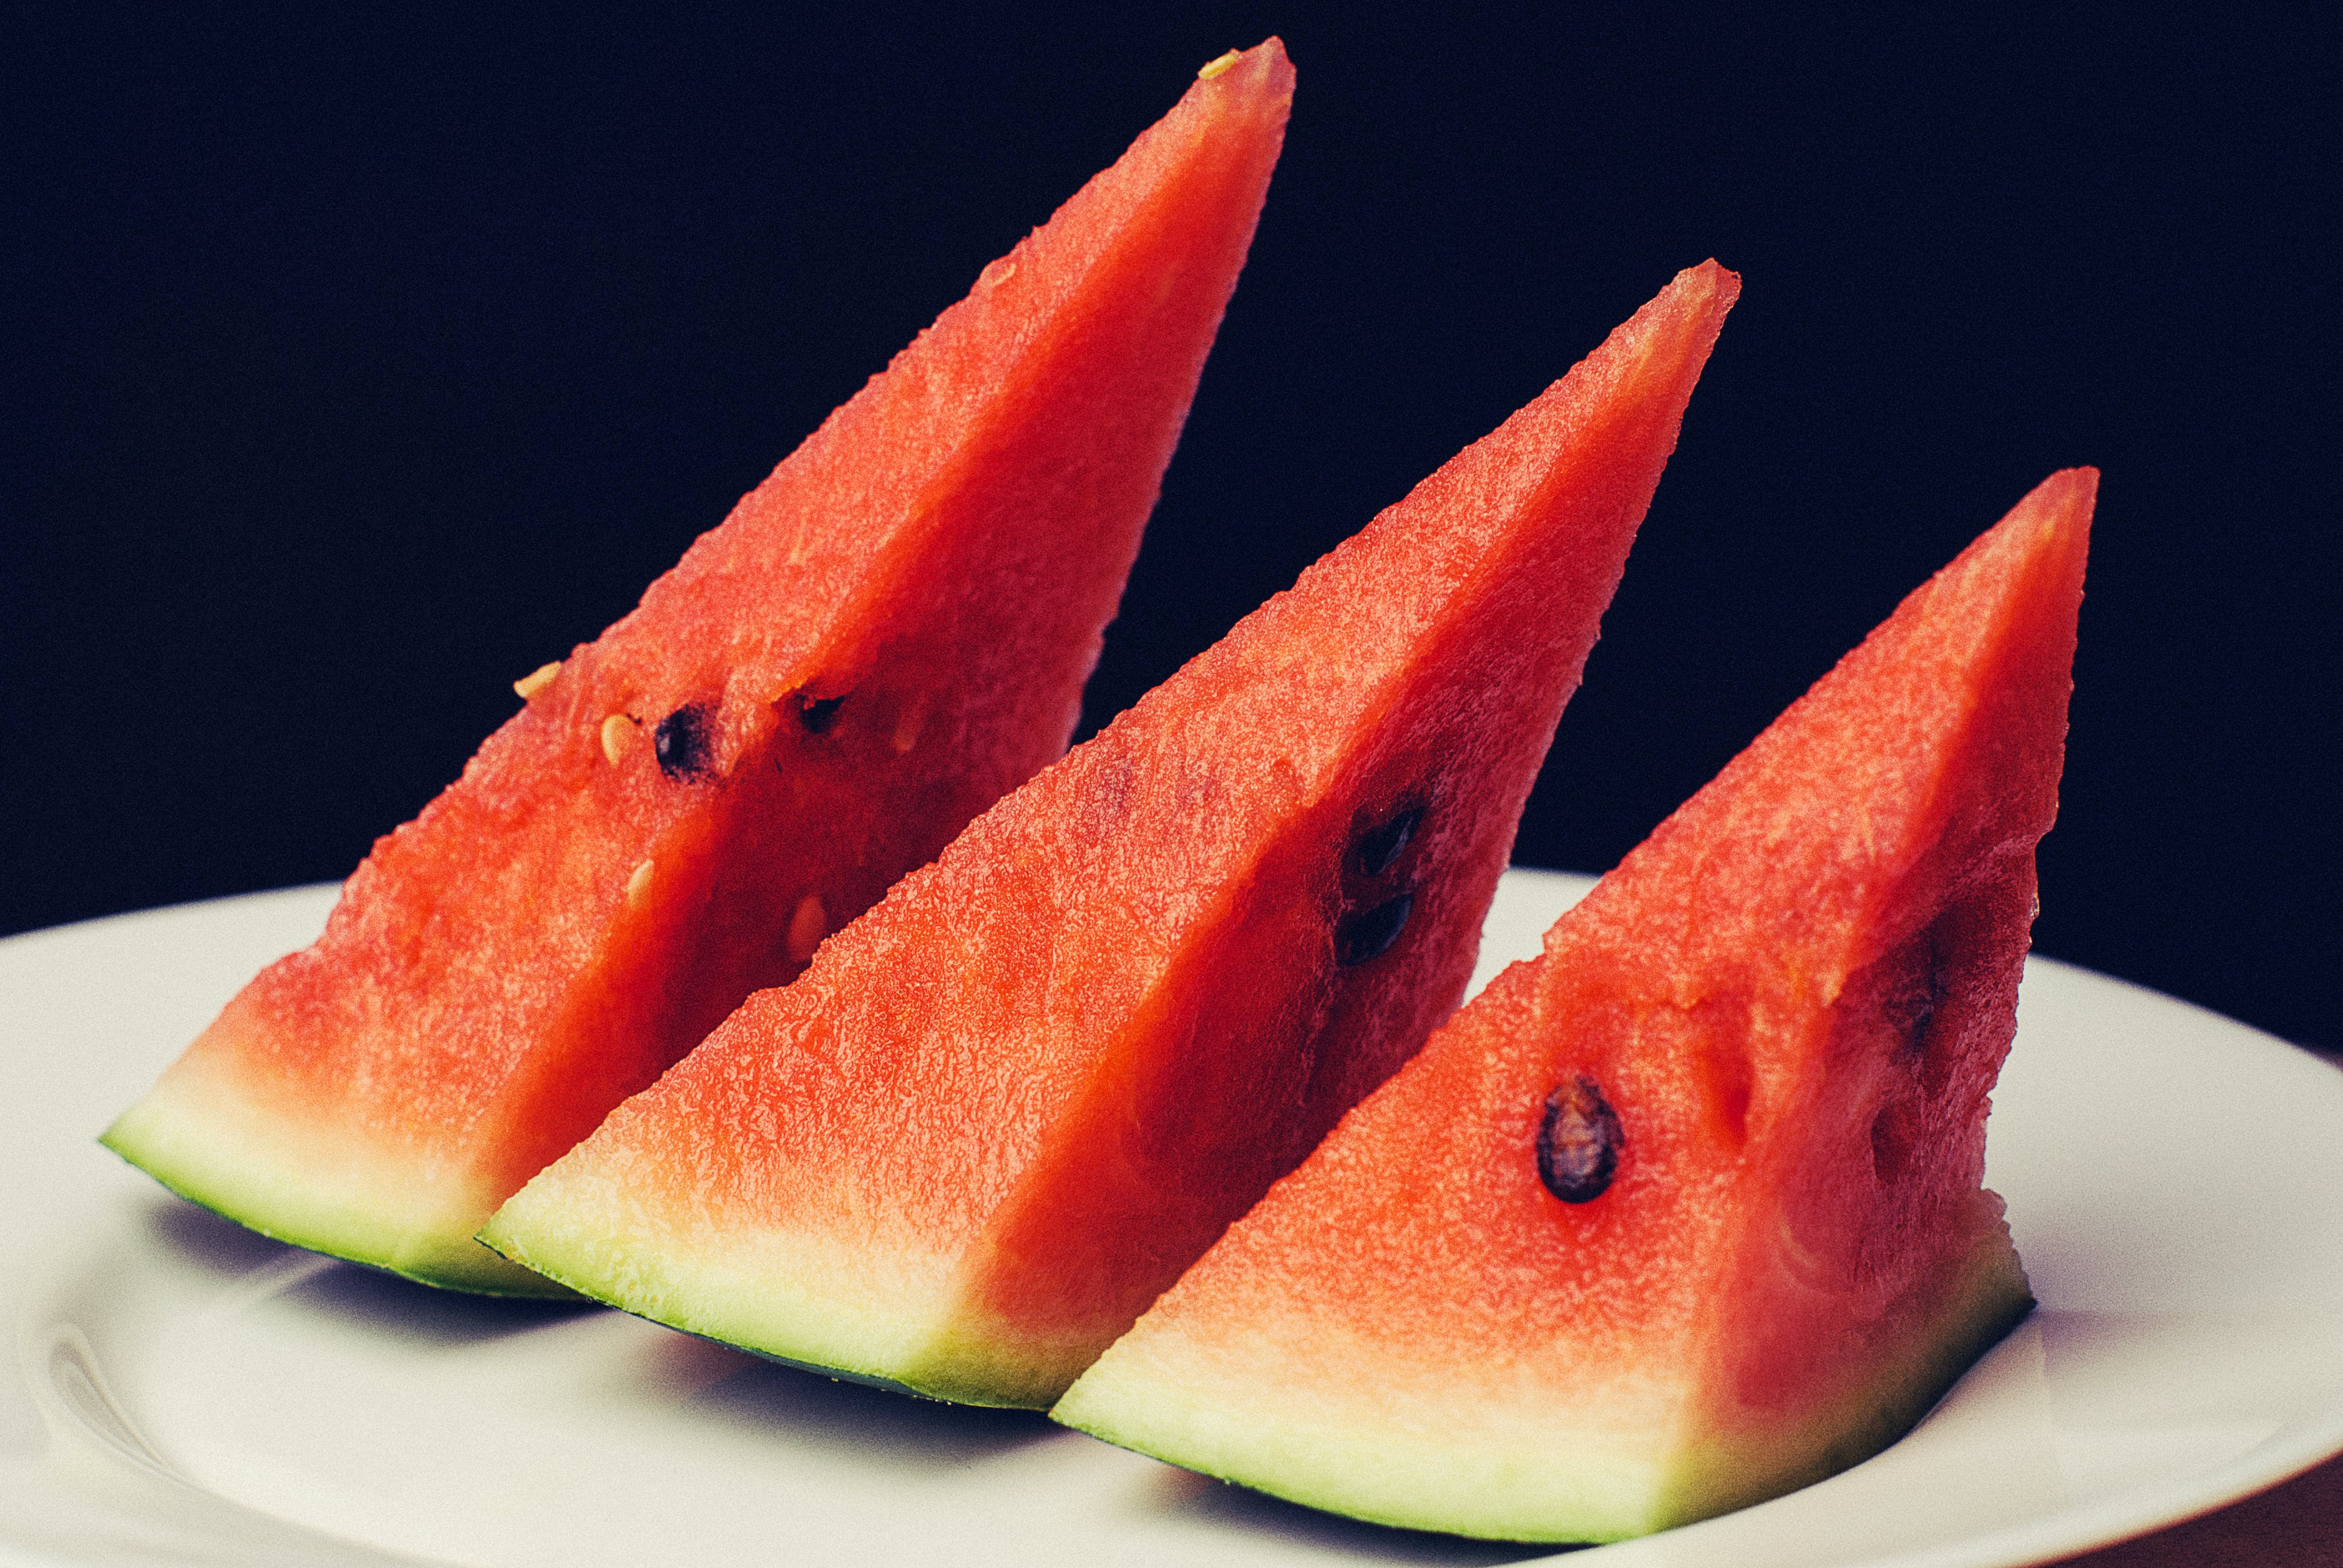 Free stock photo of food, healthy, fruit, melon